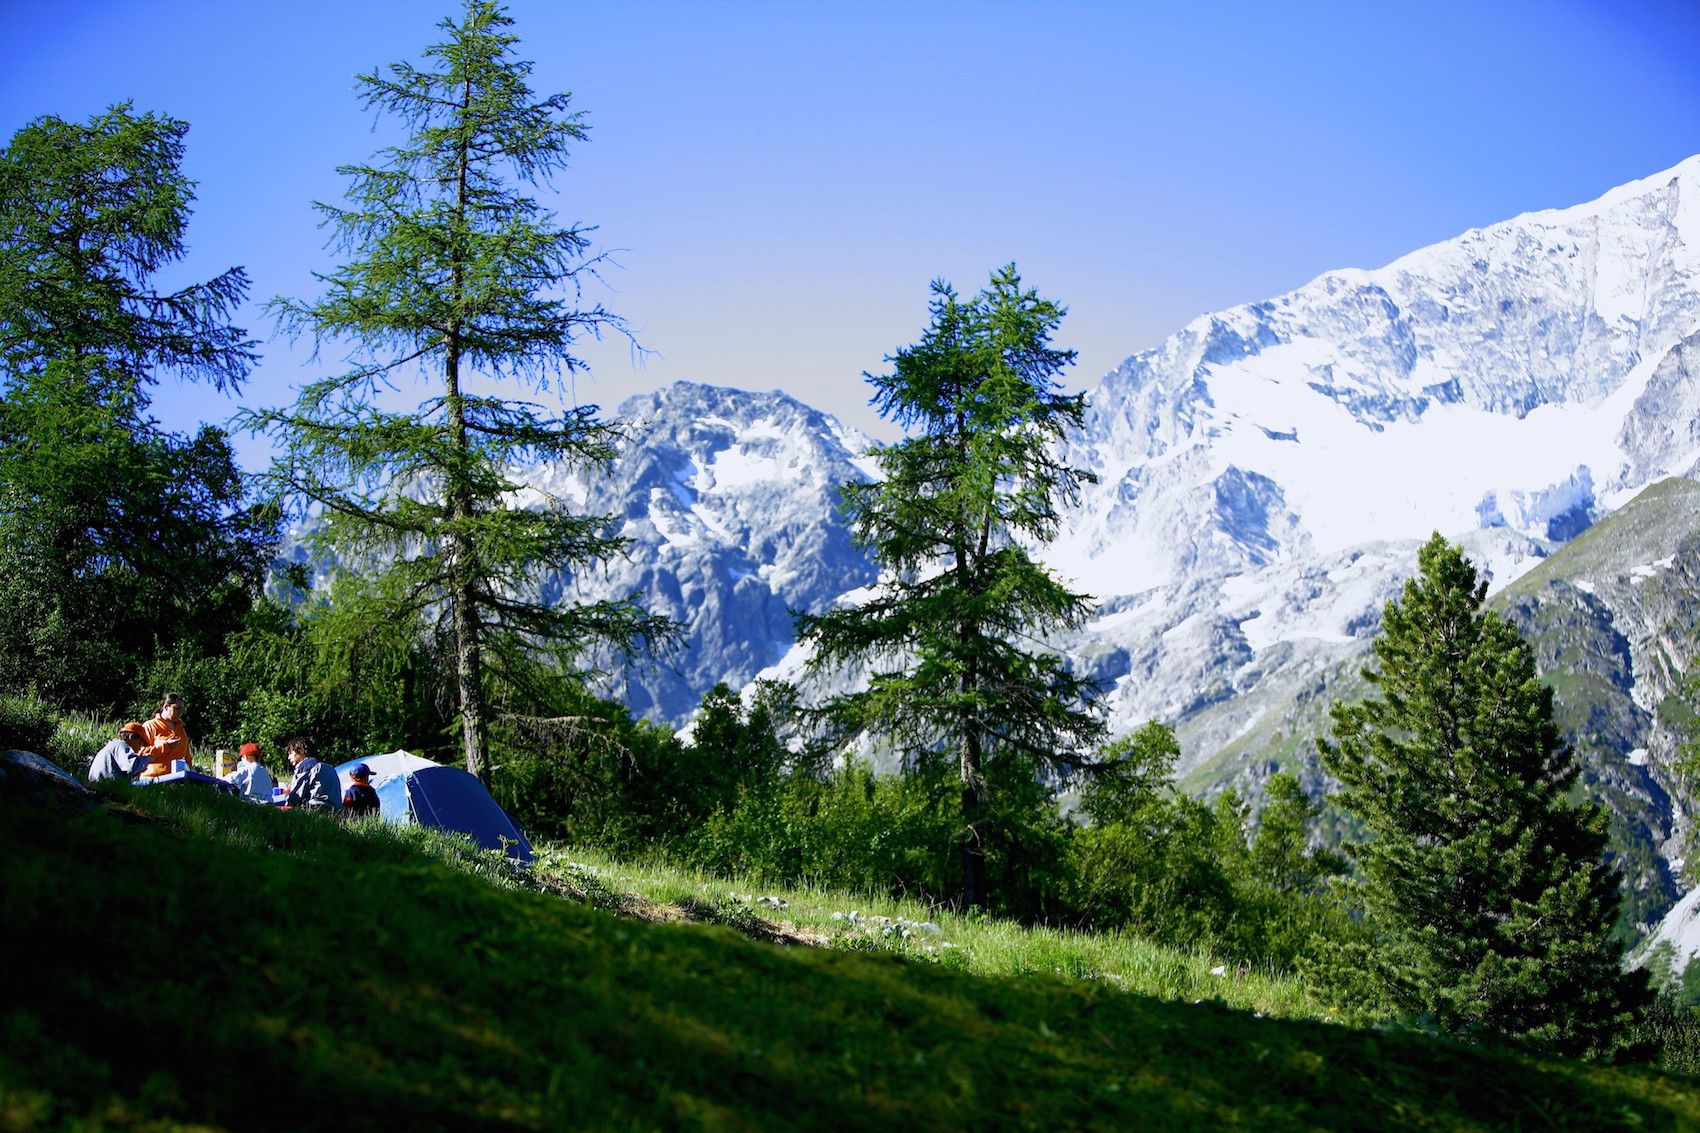 Campsites in Austria & Switzerland